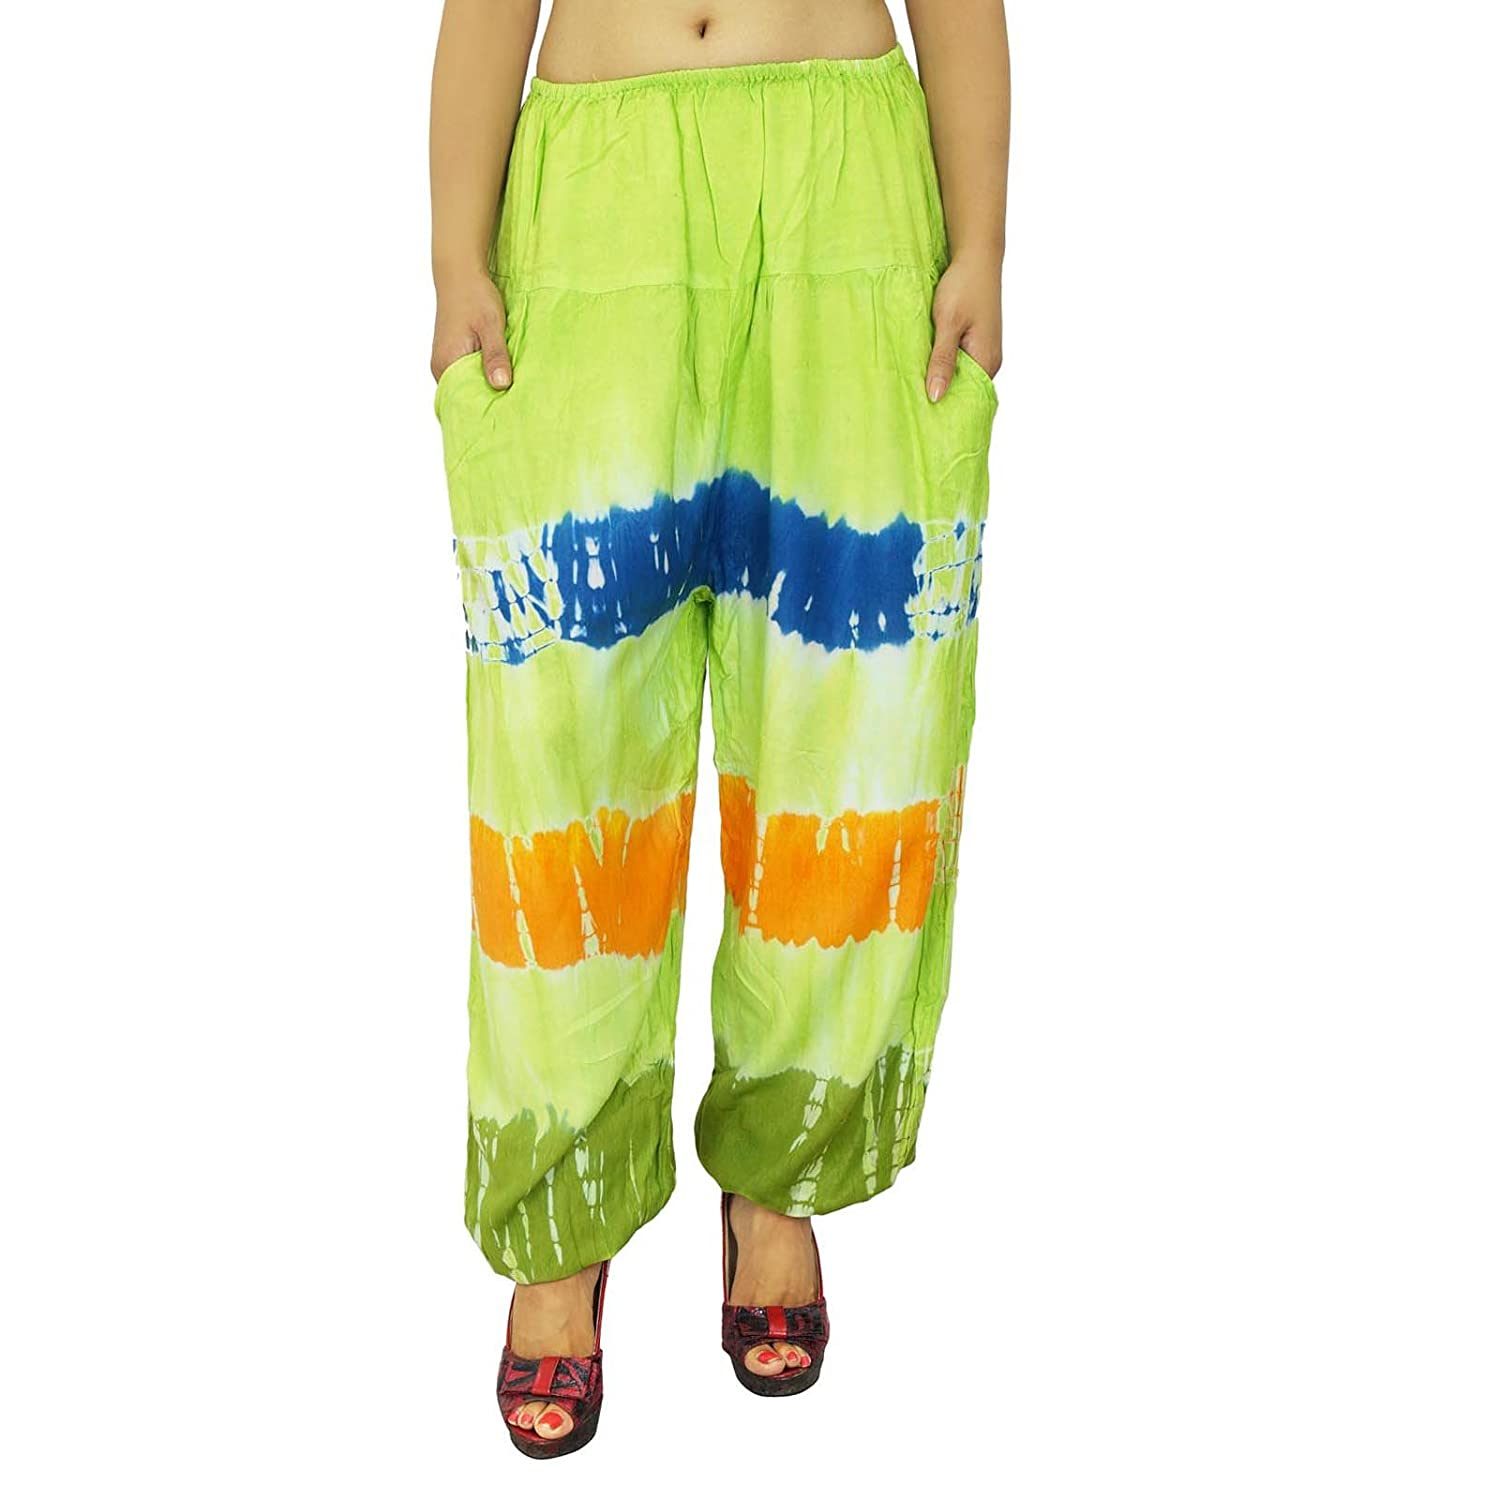 Frauen Rayon Pyjamas Hosen Pant Gypsy Bottoms Indian Summer Wear Pyjamas